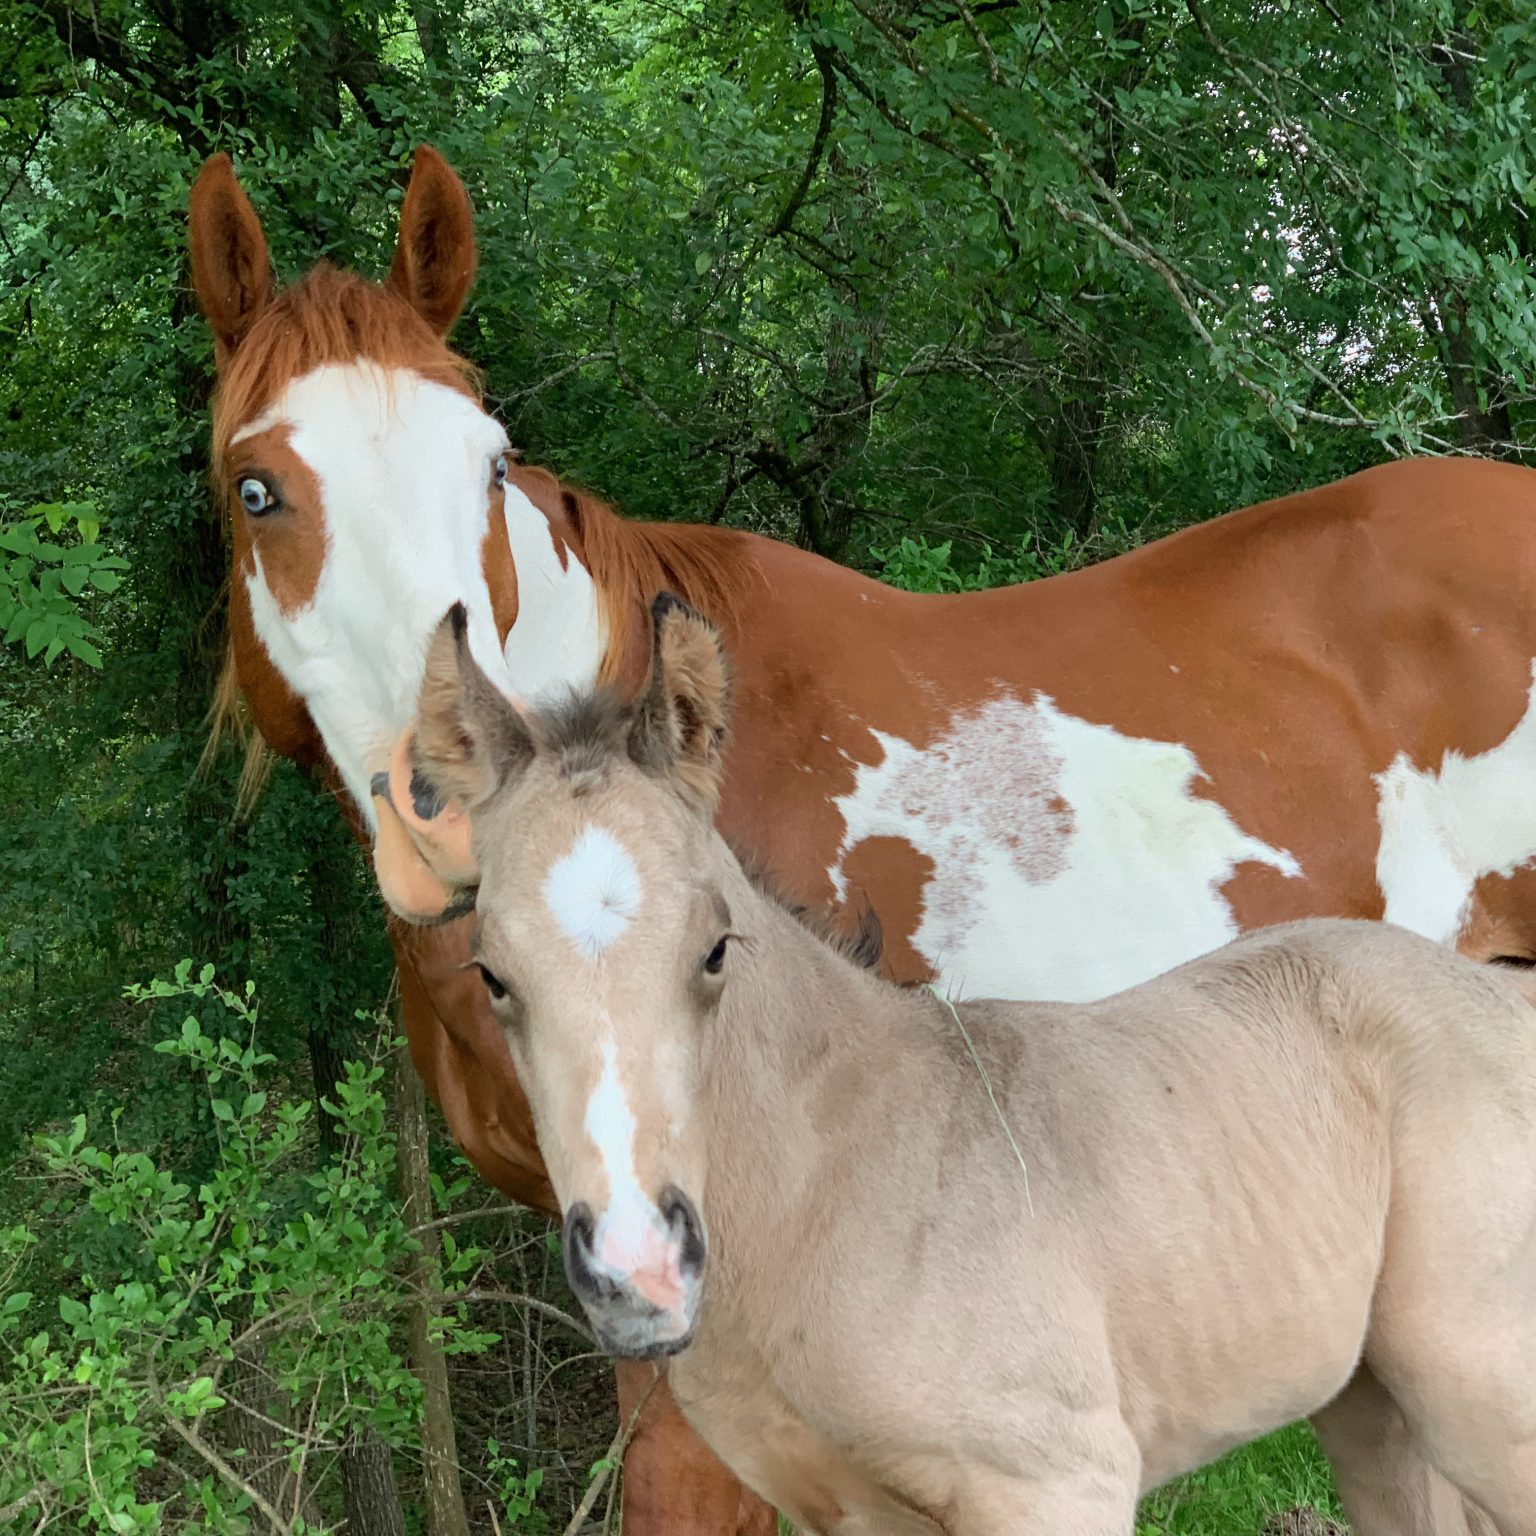 Austin dude ranch offers photo shoots for horse and rider, engagement photos and more!  Pictured here is a photo favorite, Annie Up and her baby, Chi